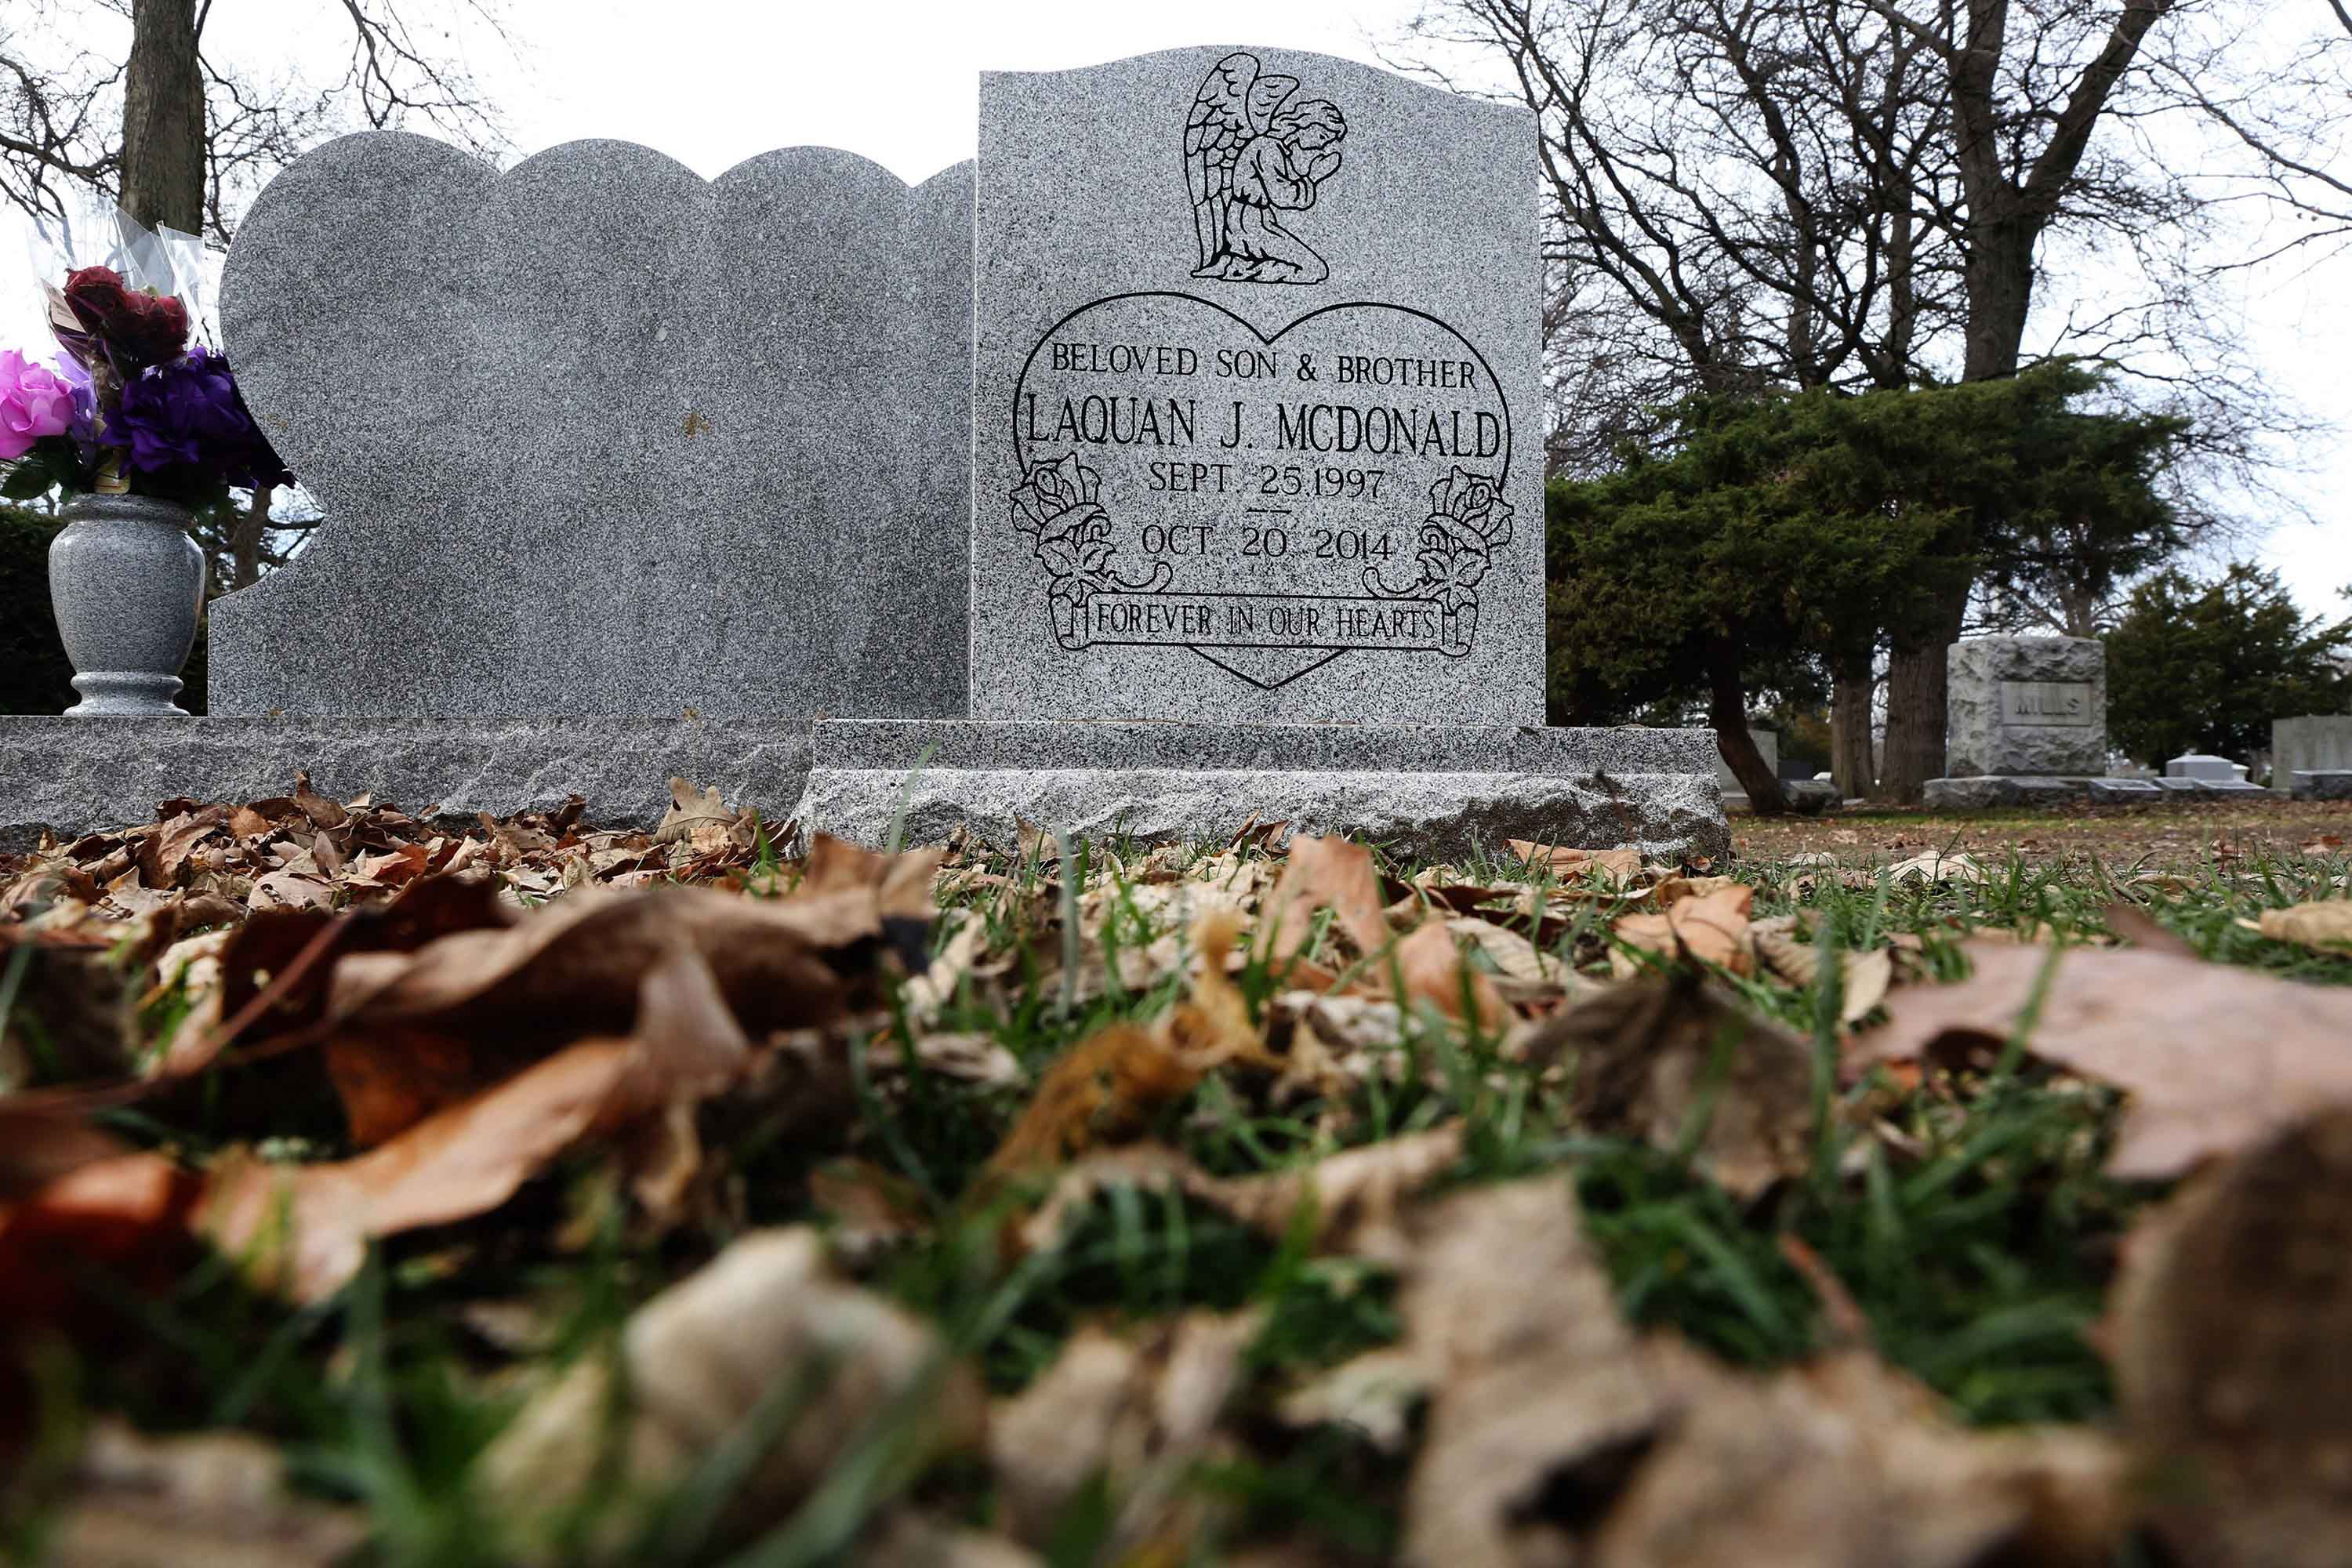 The headstone of Laquan McDonald at Forest Home Cemetery on Thursday, Dec. 10, 2015 in Forest Park, Ill. (Antonio Perez/Chicago Tribune/TNS)